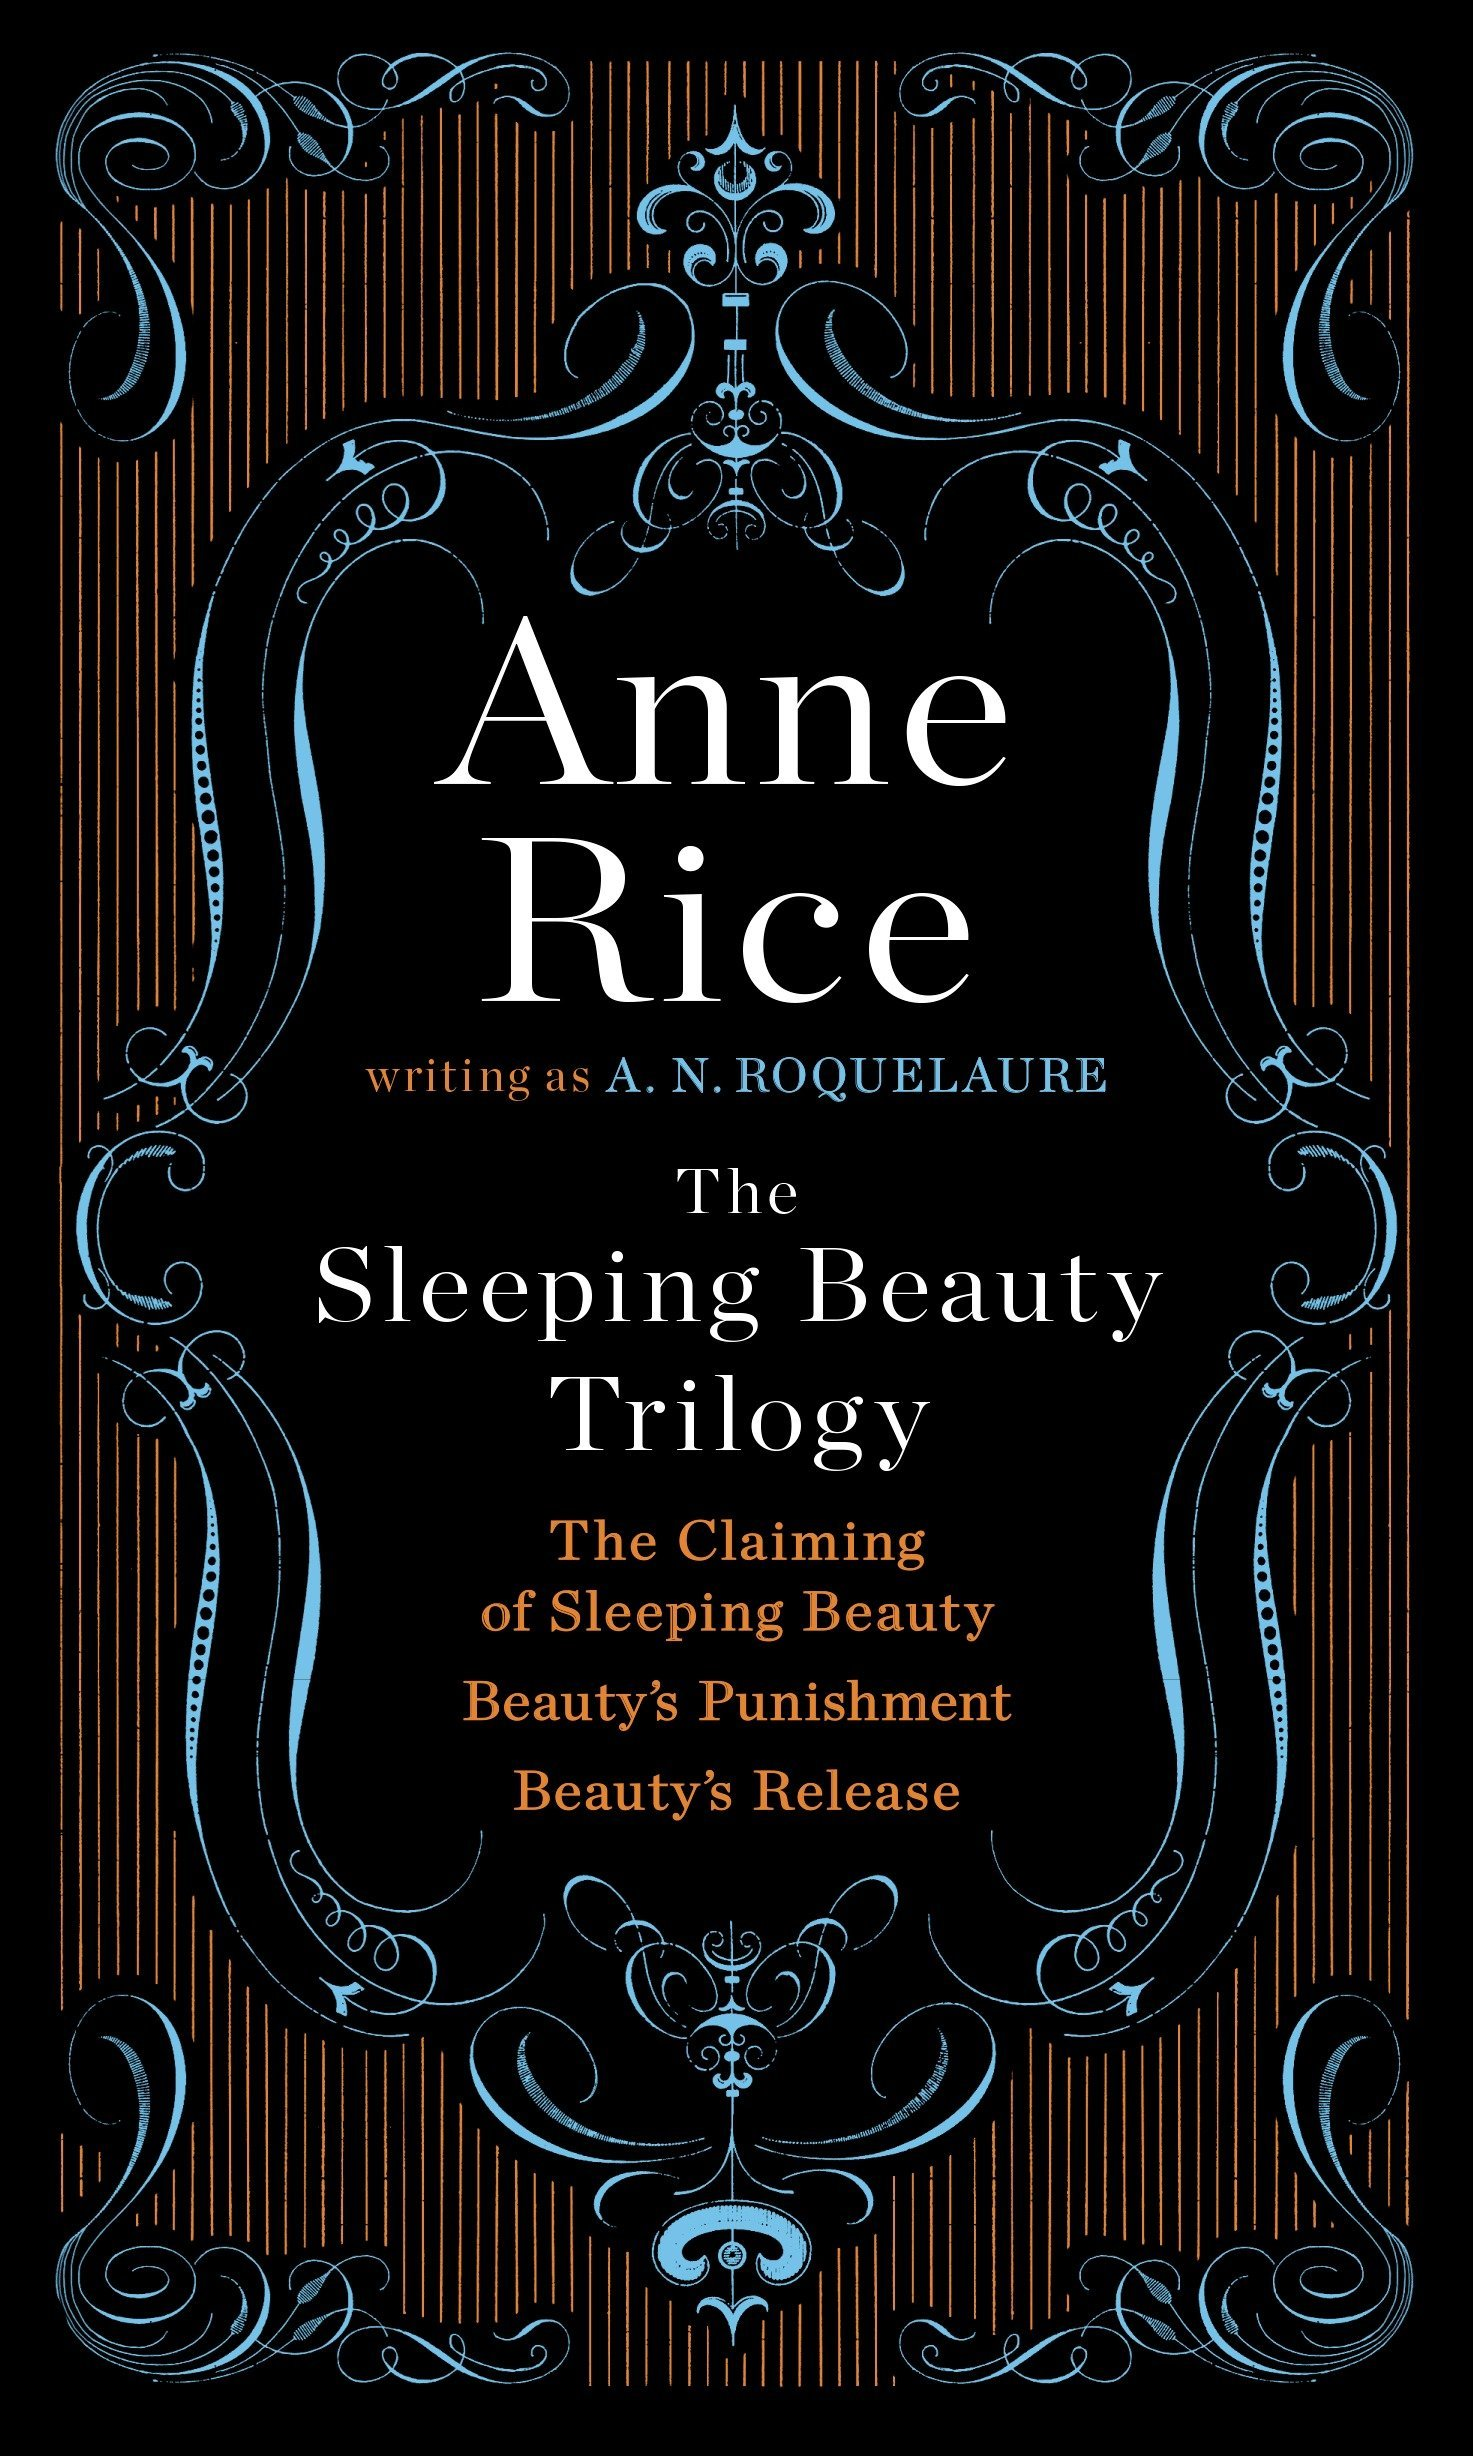 The Sleeping Beauty Quartet by Anne Rice